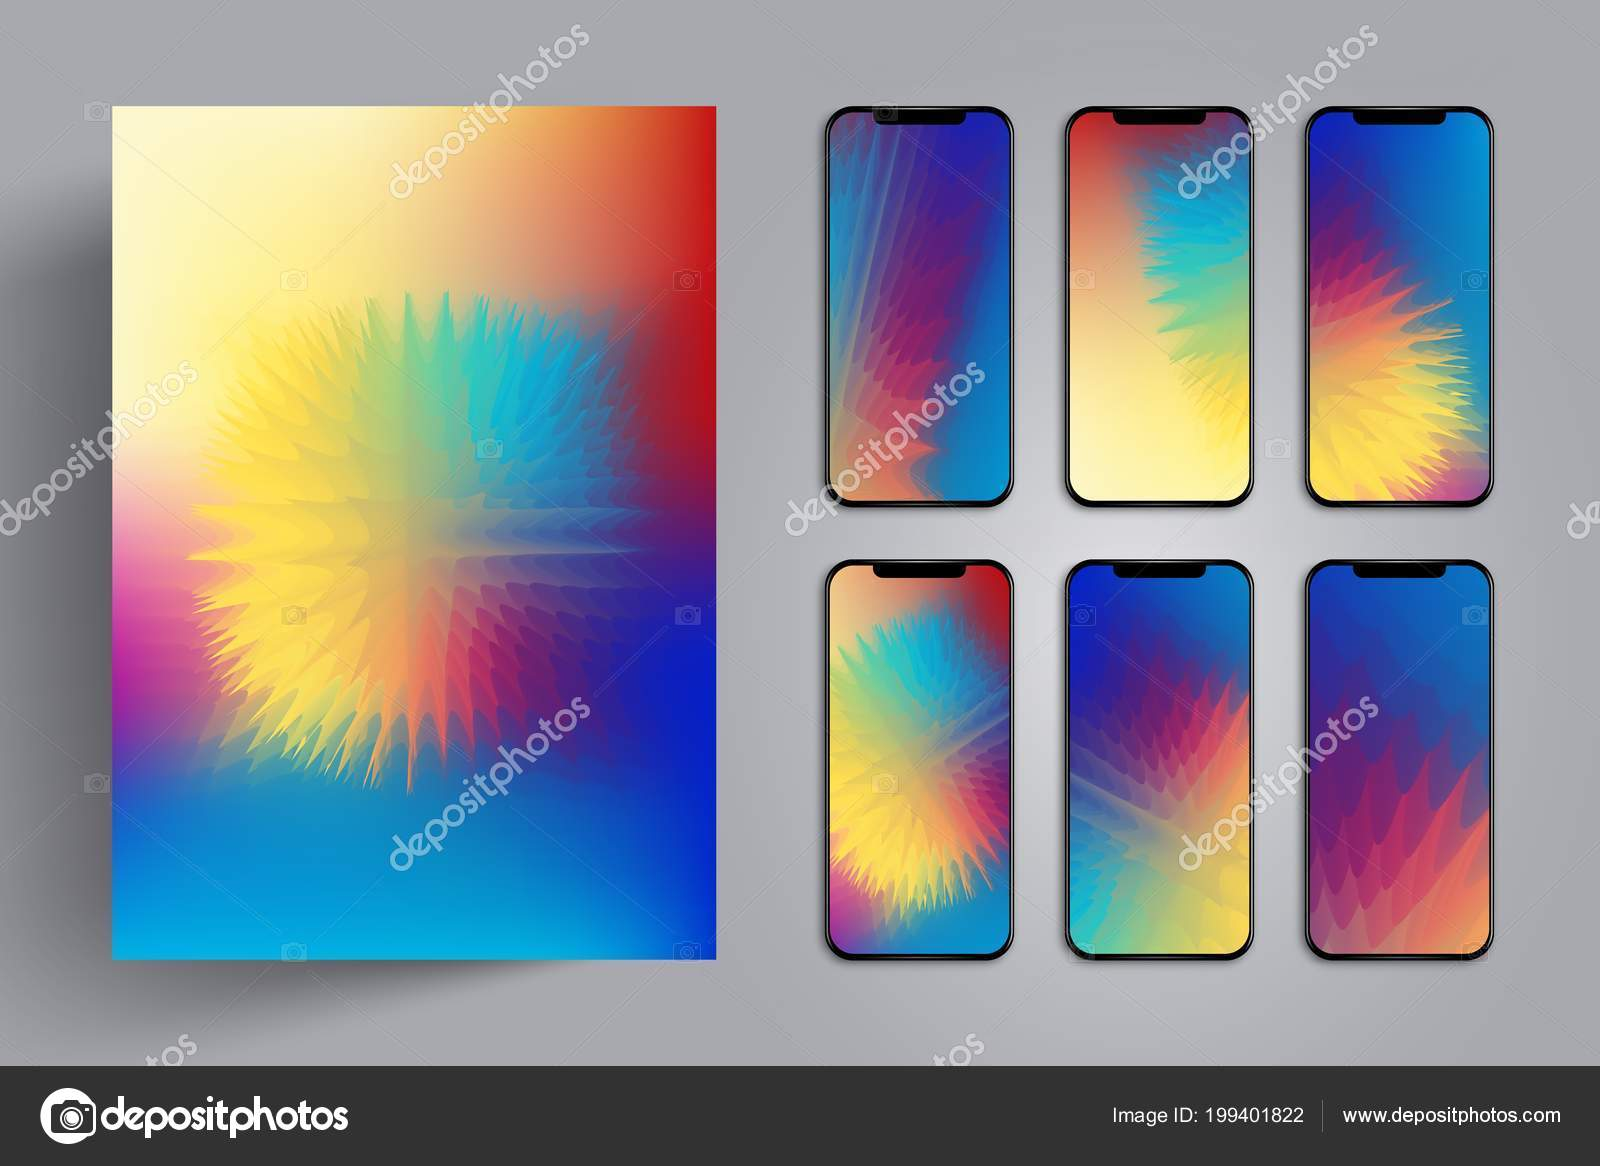 Wallpaper for smartphone or tablet for a background or cover with wallpaper for smartphone or tablet for a background or cover with colorful explosion or a thorn voltagebd Images